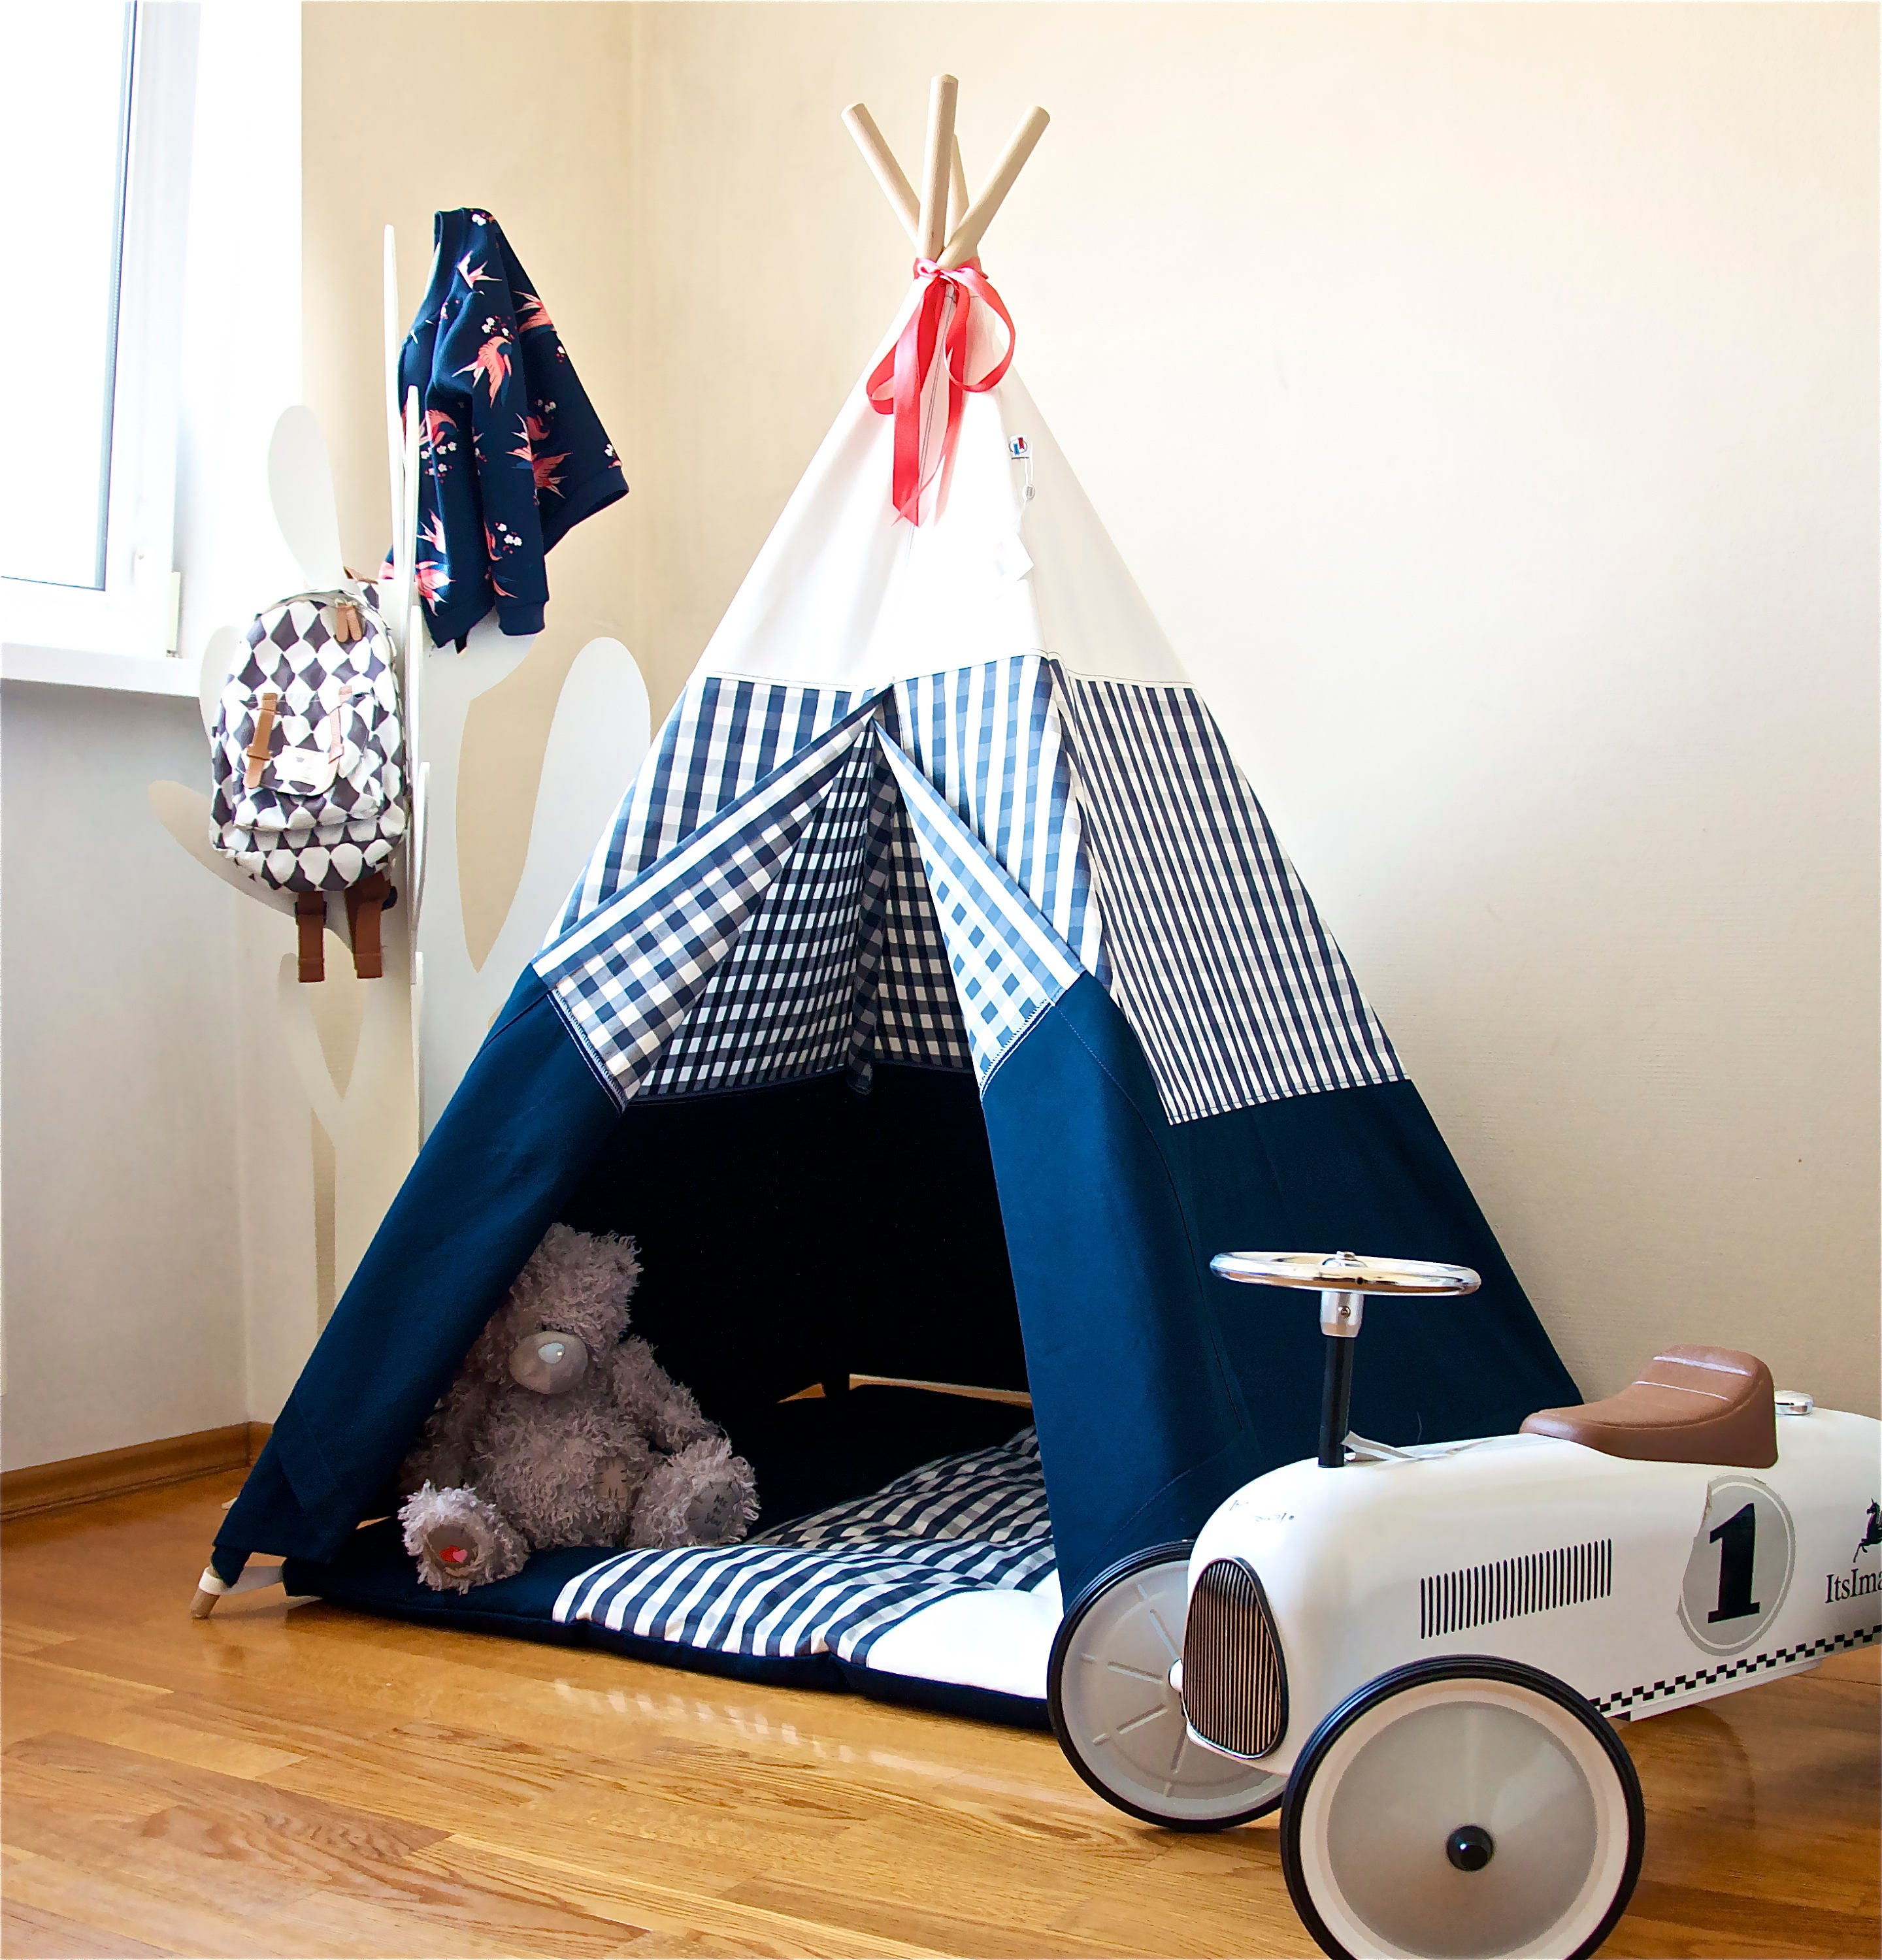 Design Childrens Teepee navy blue teepee childrens kids play tent details this canvas teepee